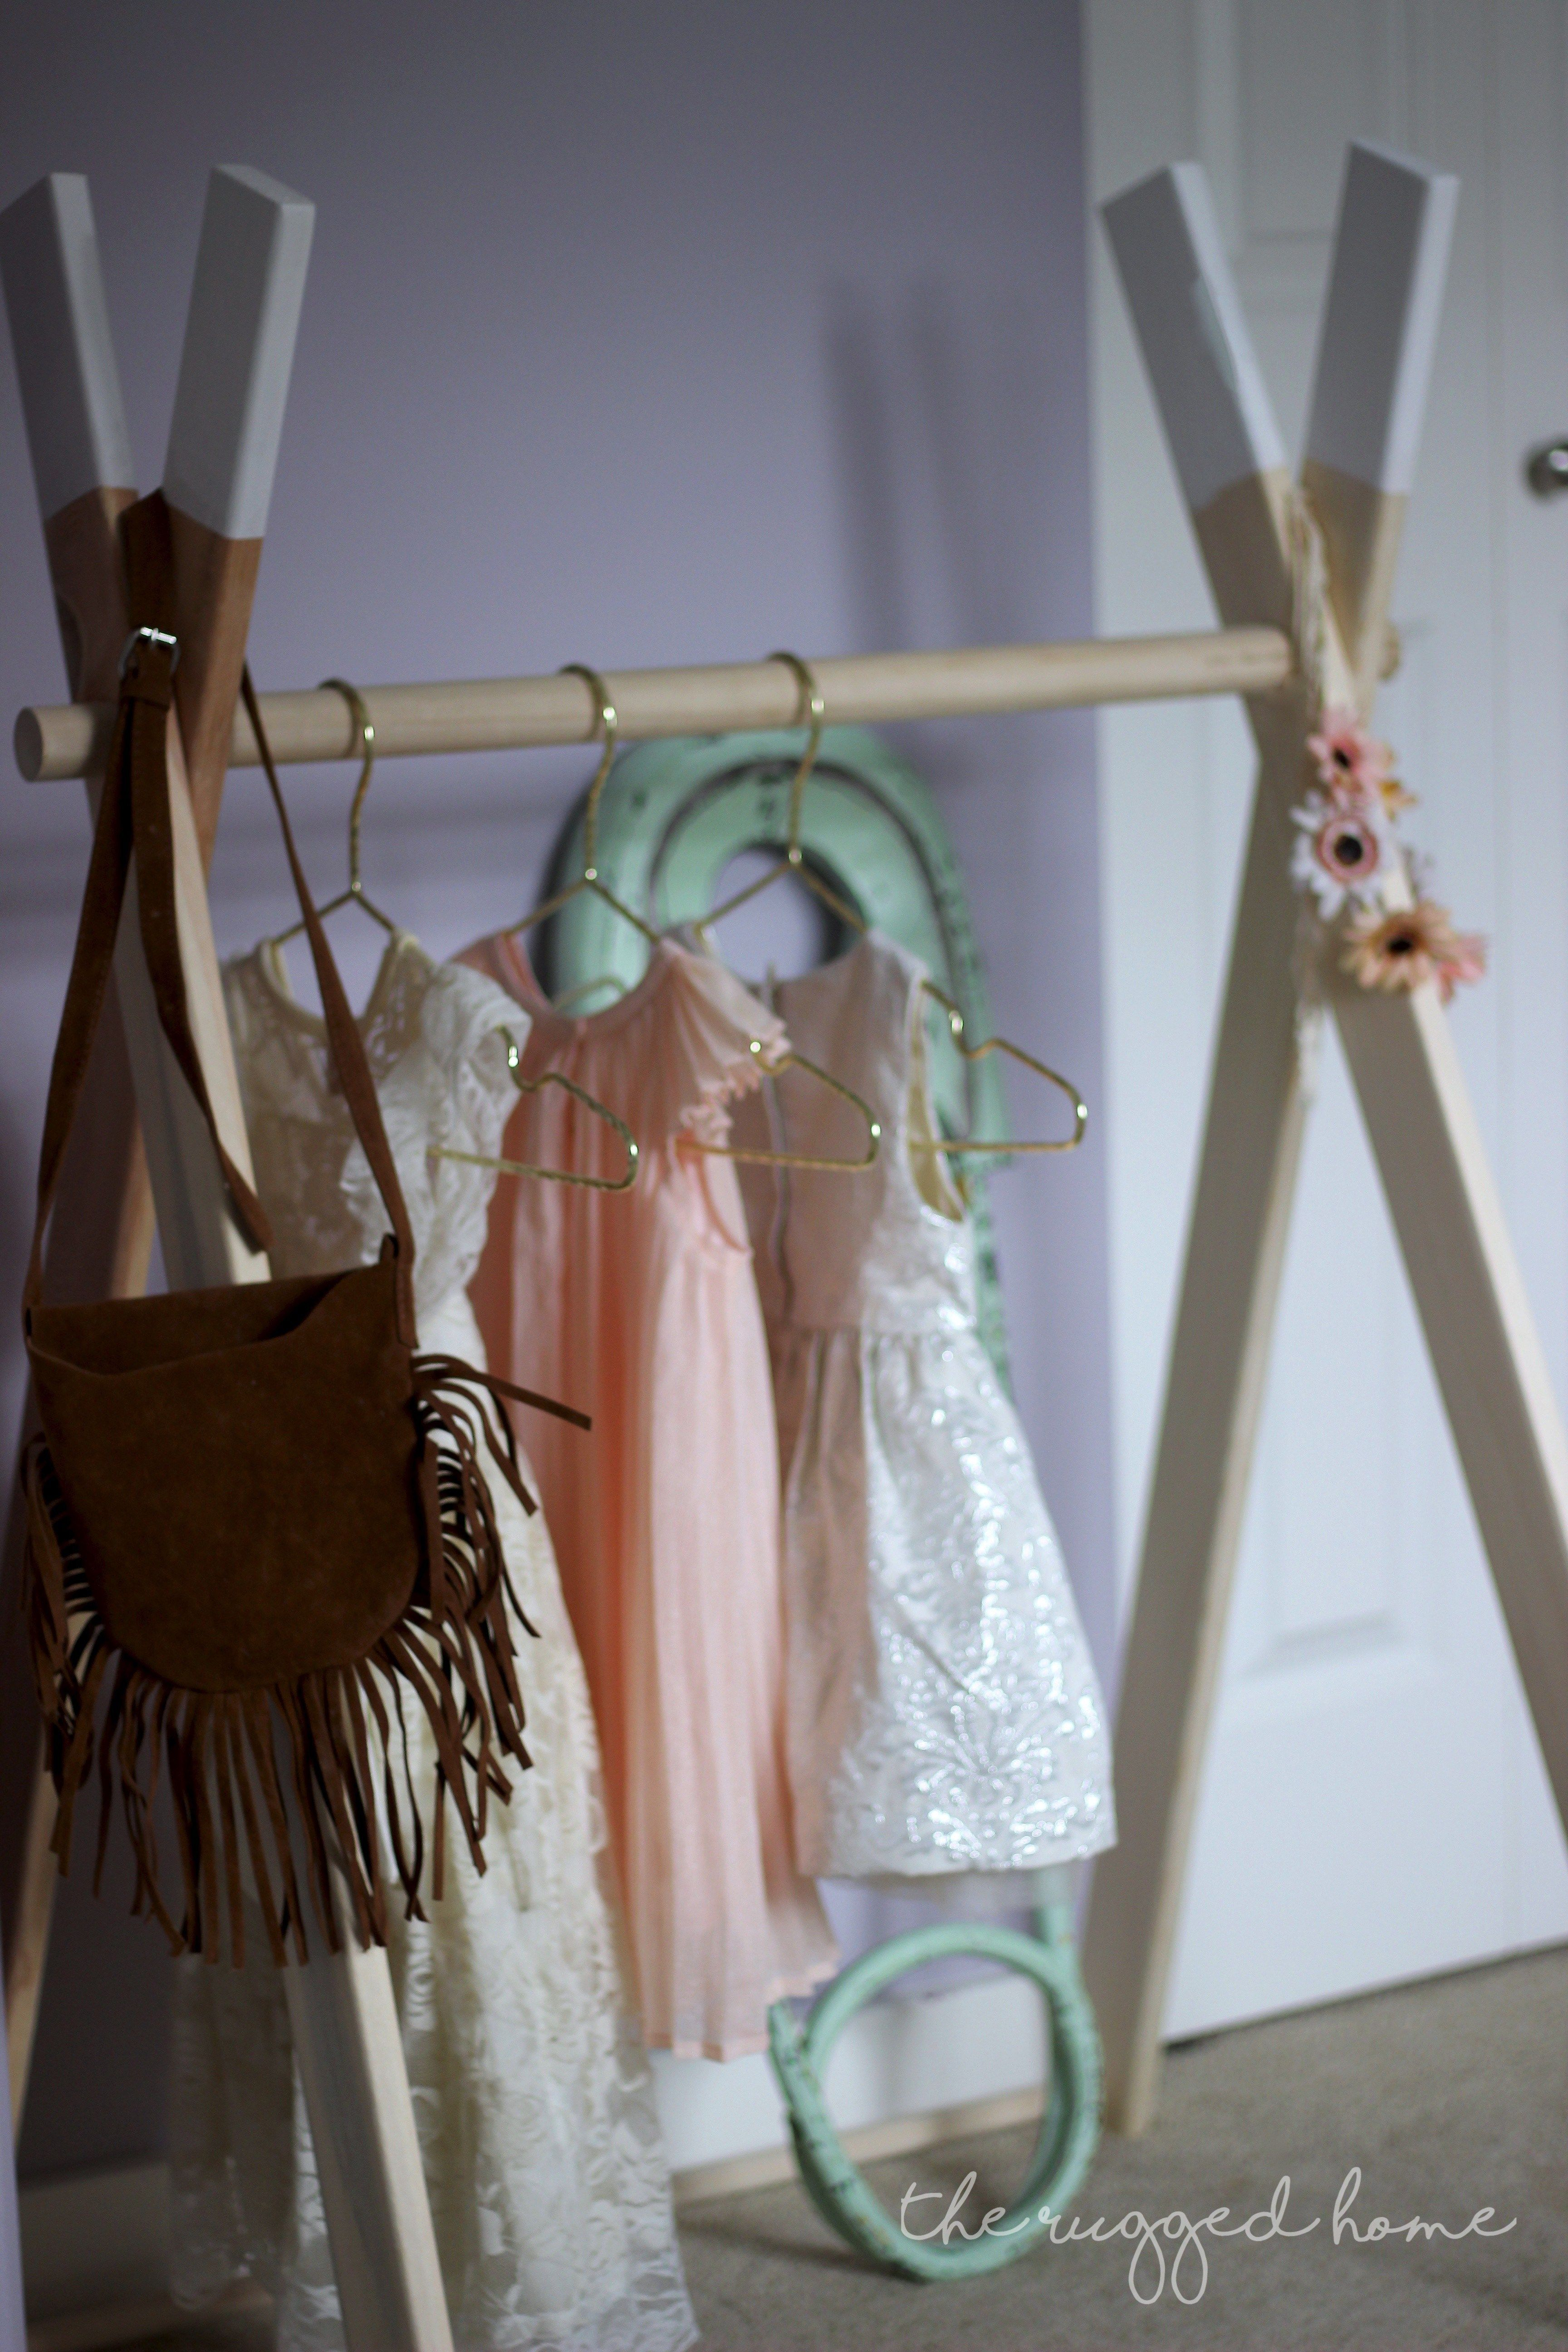 elegant especial projects with ideas foter rack storage closet up diy dress kids bodacious wardrobe ah gowns and